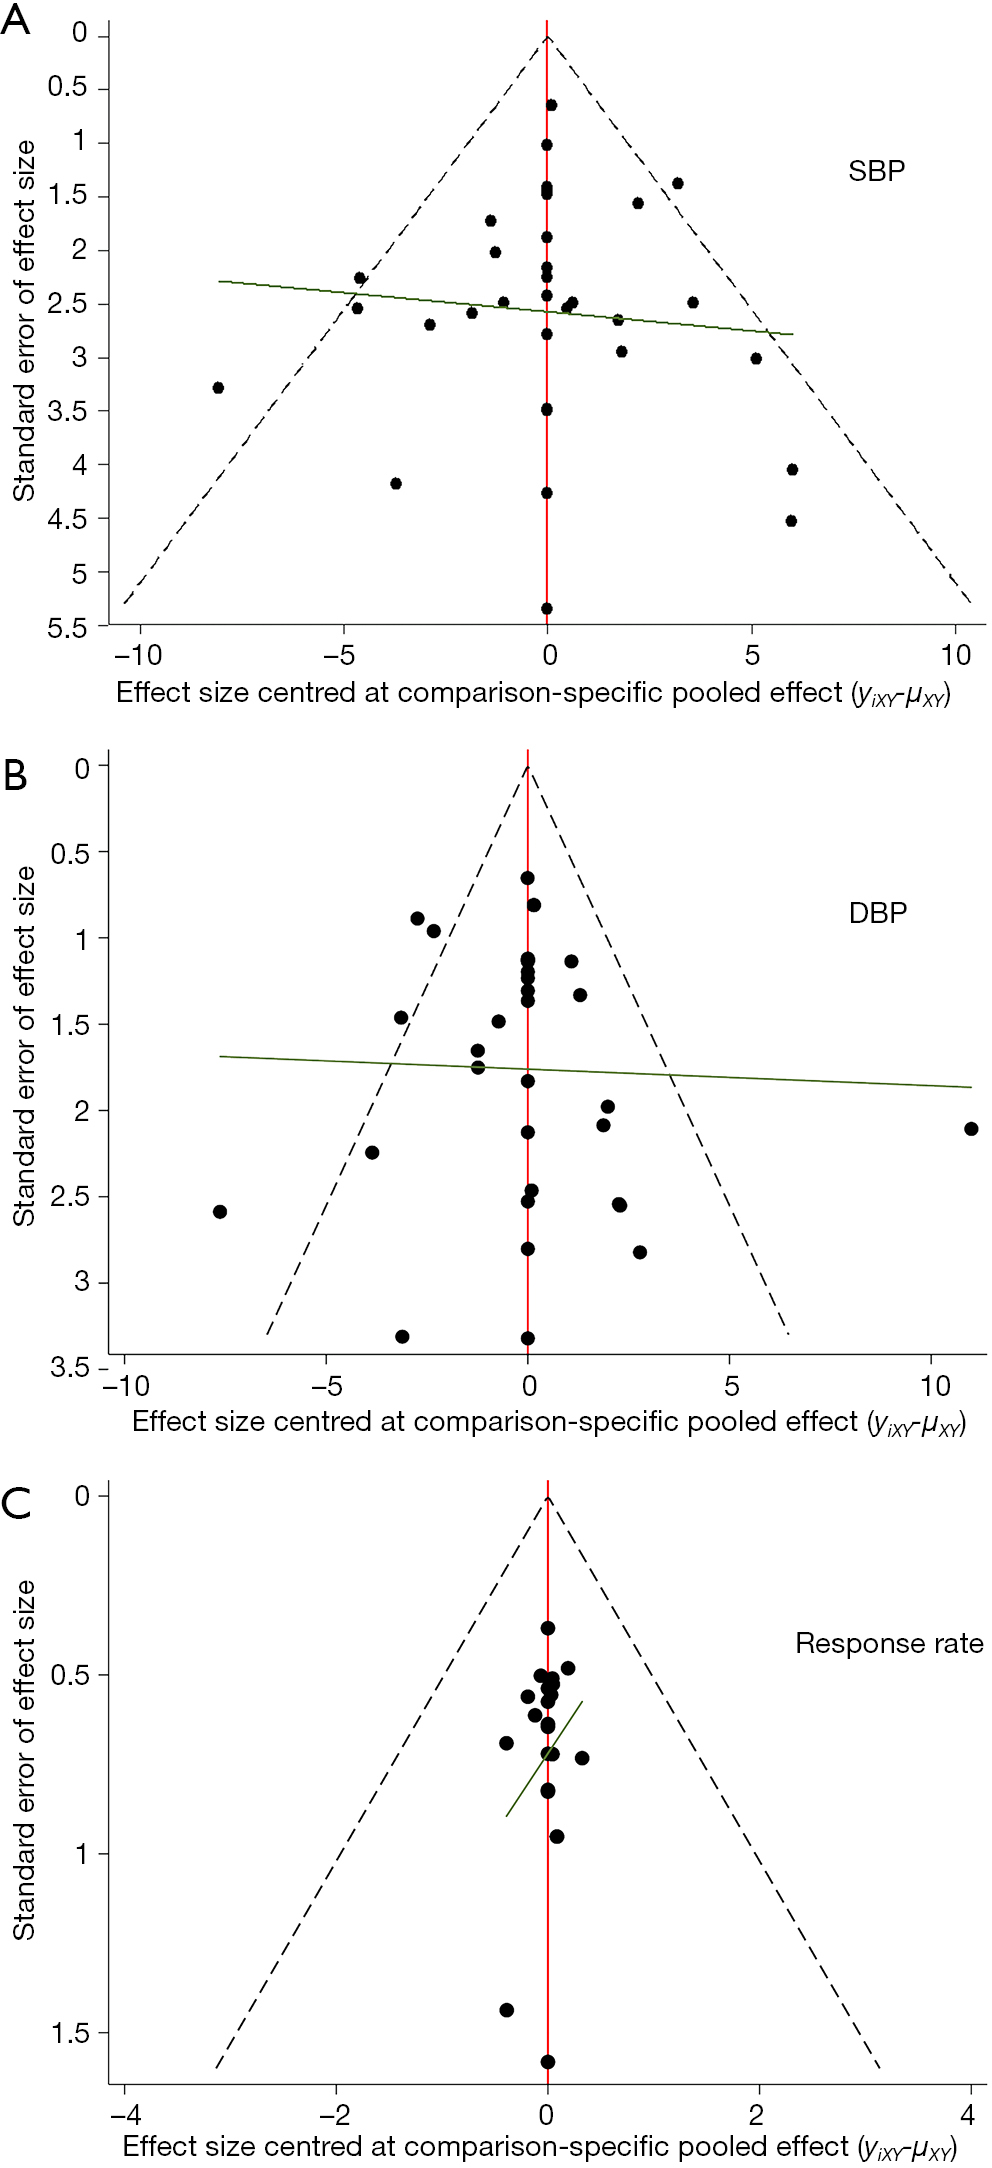 Acupuncture therapy for essential hypertension: a network